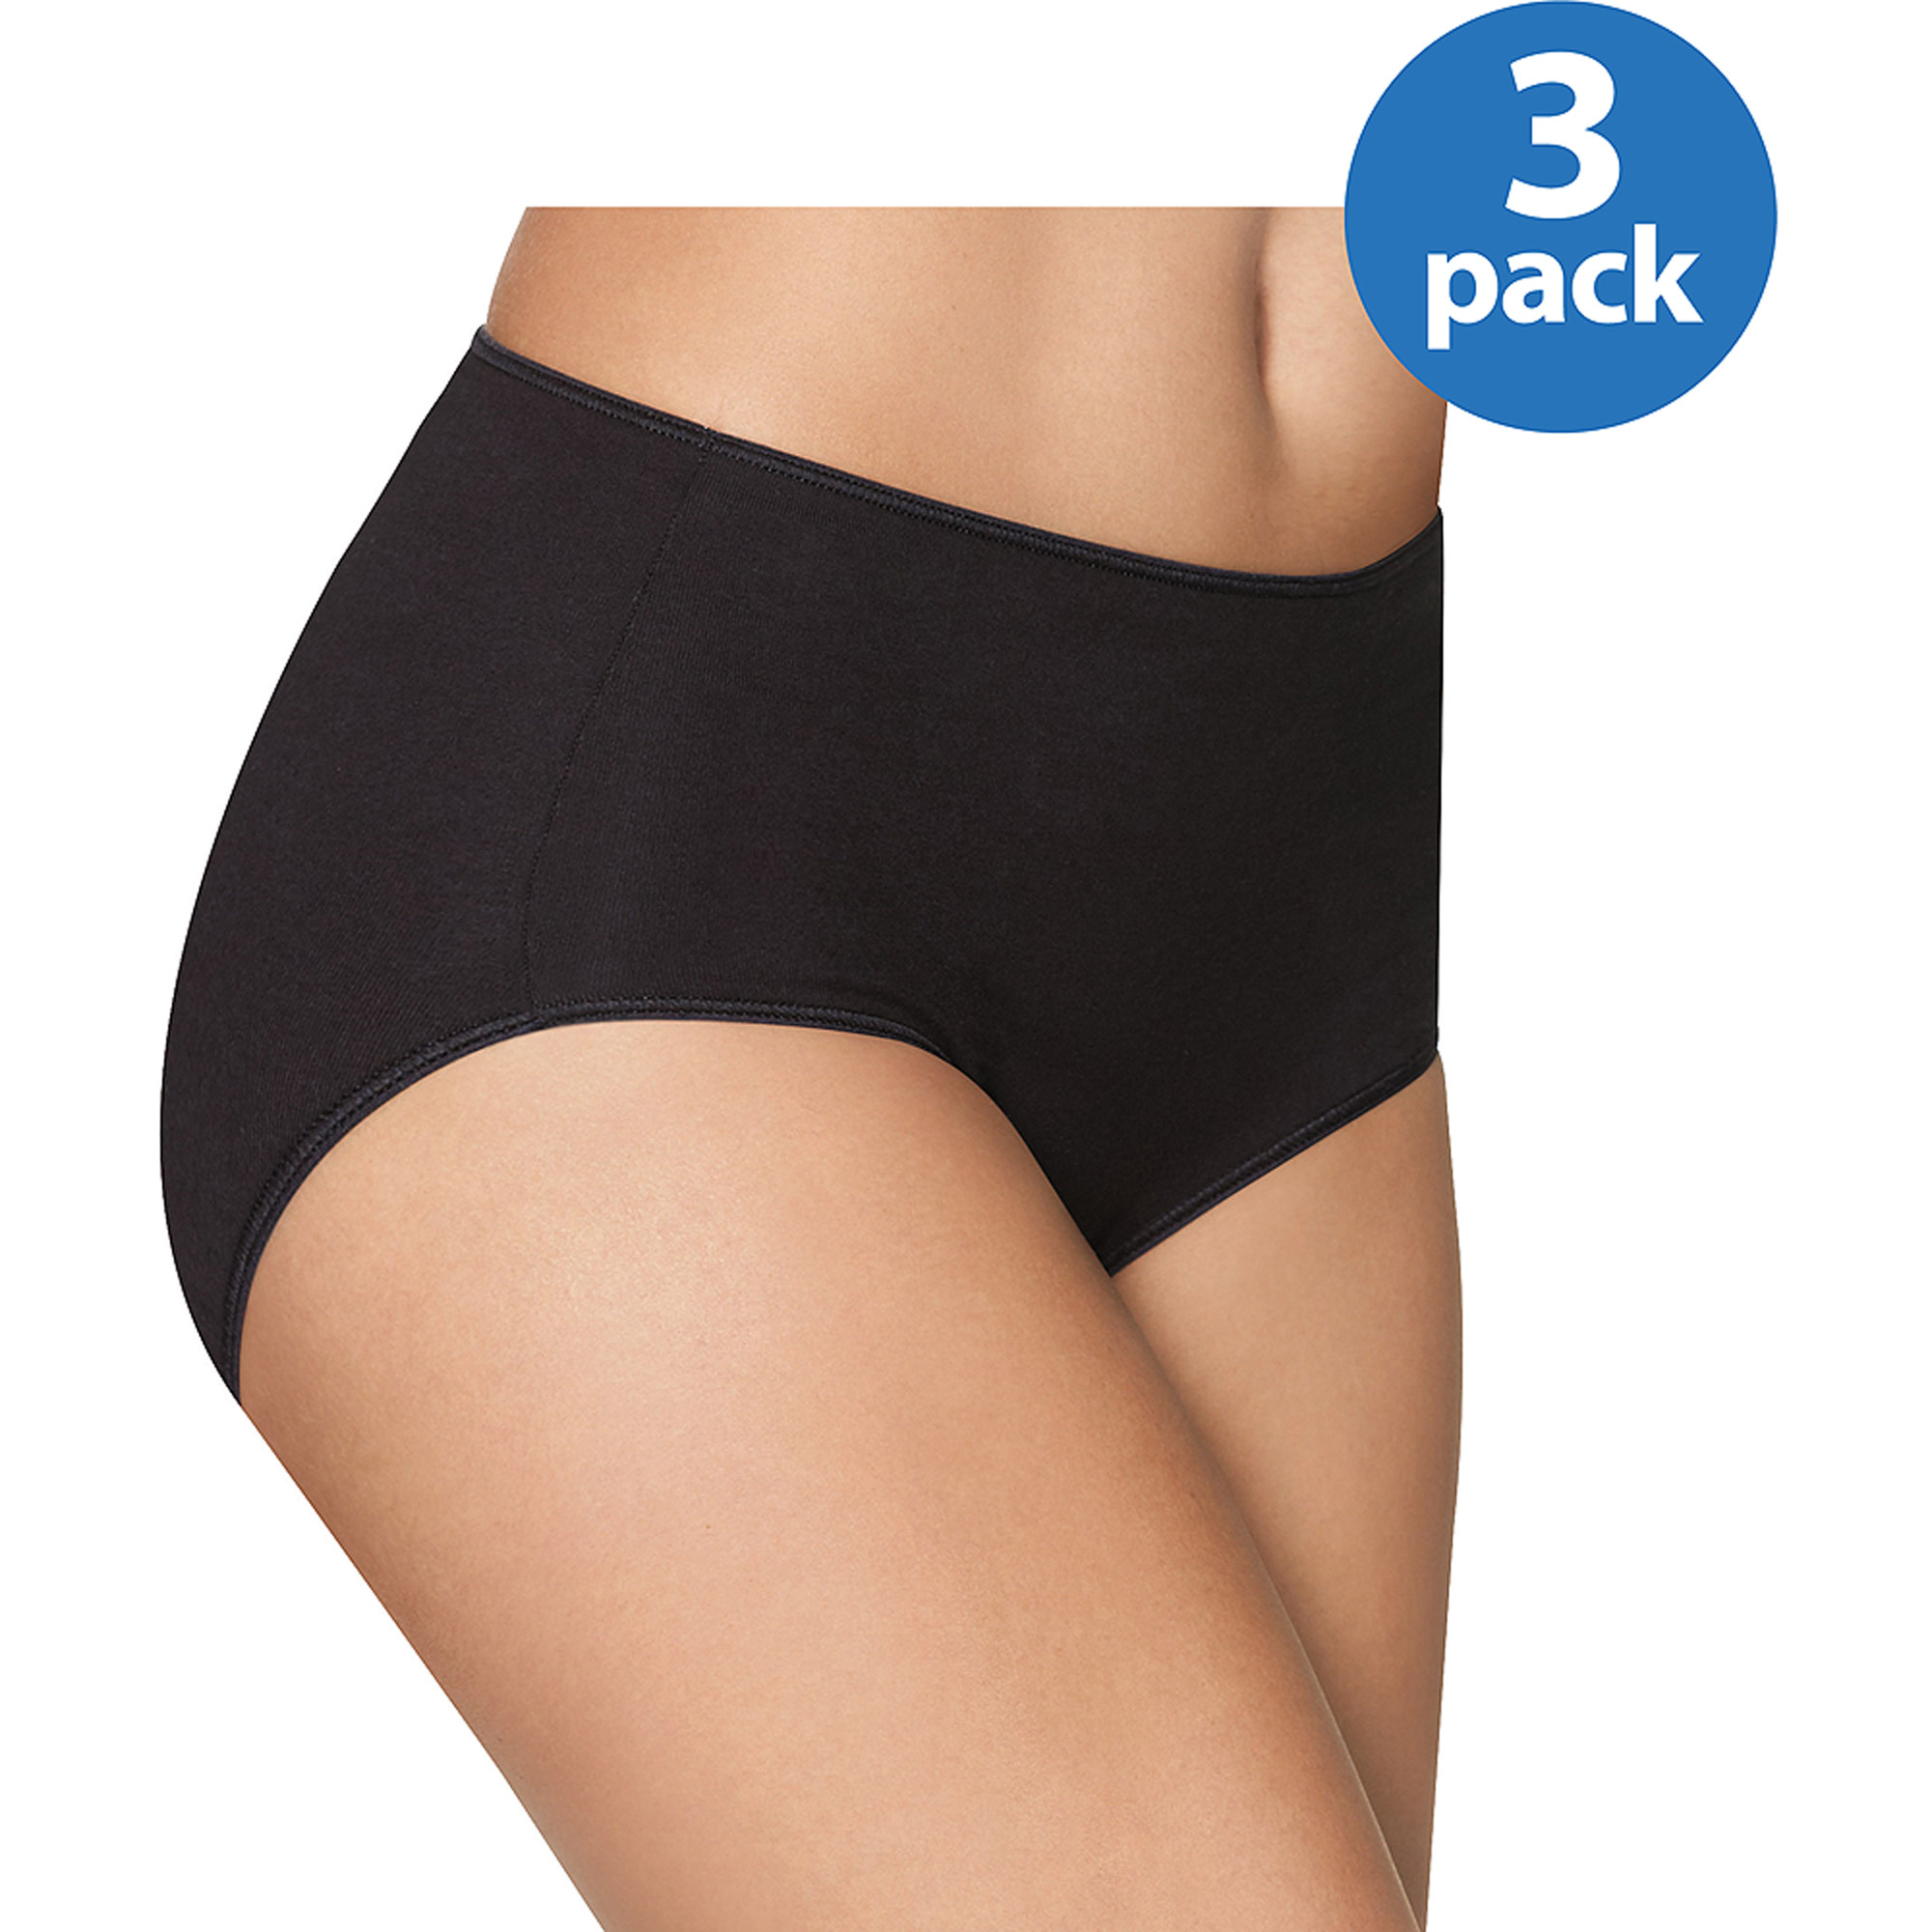 Hanes Women's Smooth Illusions Brief Panties 3 Pack